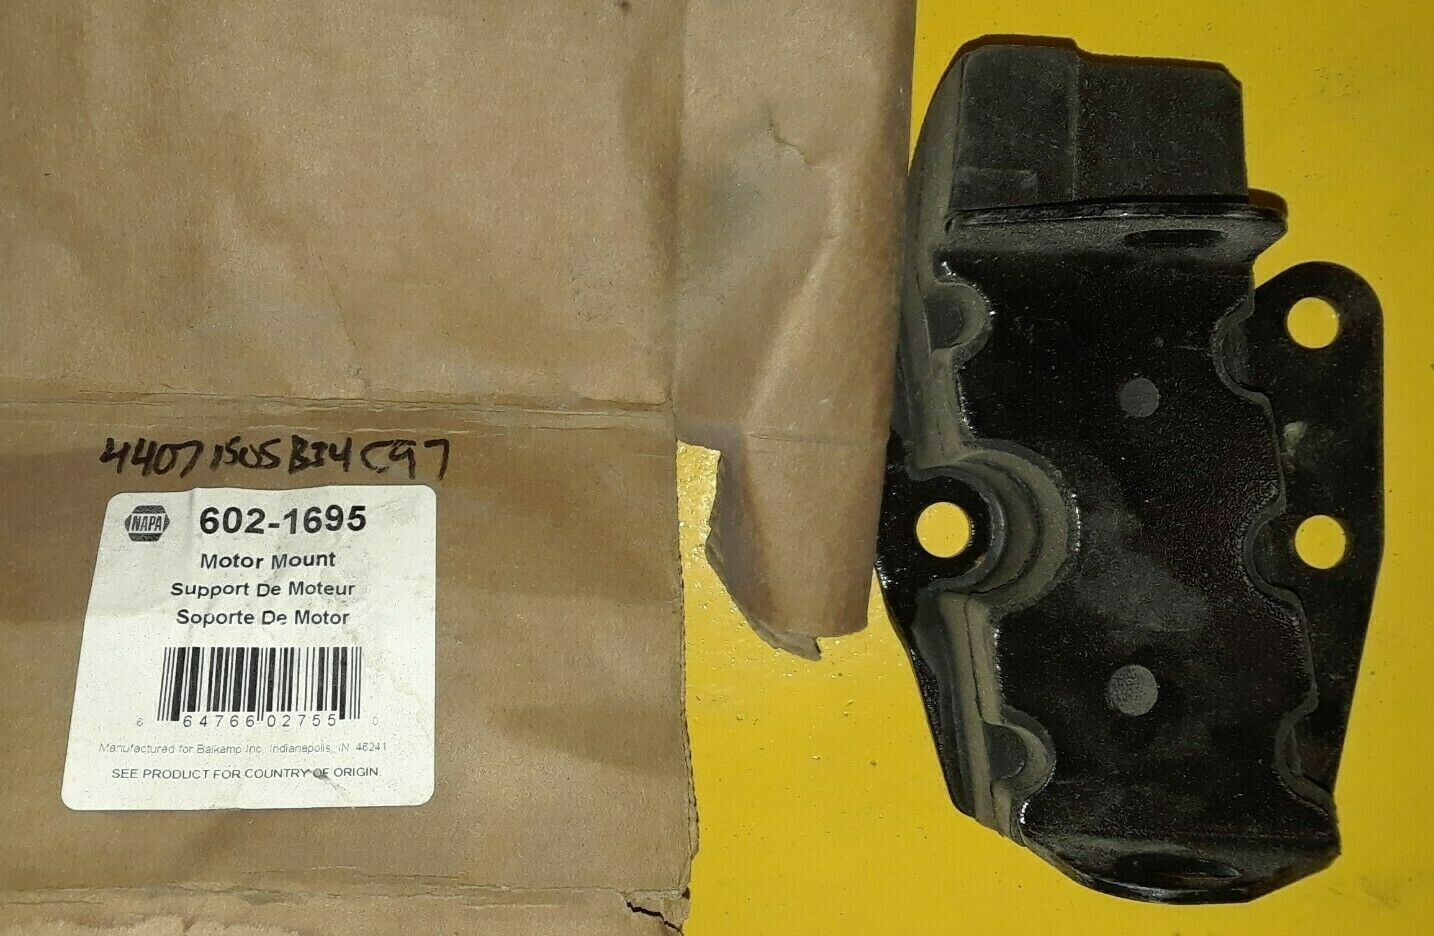 NAPA Engine MOTOR Mount 602-1695 / EM-2723 NEW IN BOX